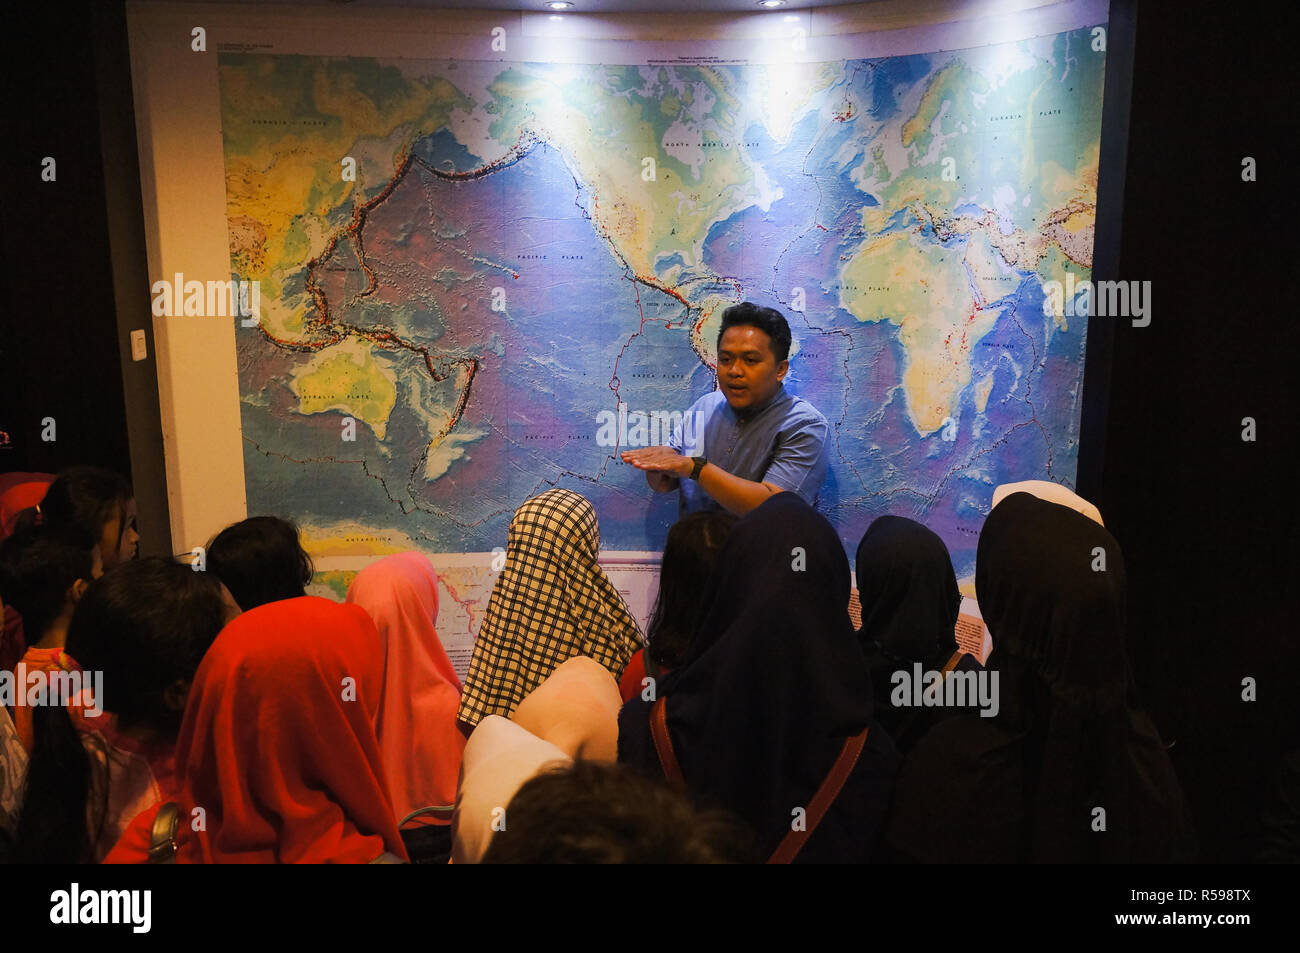 Yogyakarta, Indonesia. 30th Nov, 2018. A volcanologist explaining the kids about volcanoes history in Indonesia. This activity is a mitigation program for people that live under Merapi mountain. Credit: Galih Yoga Wicaksono/Alamy Live News - Stock Image